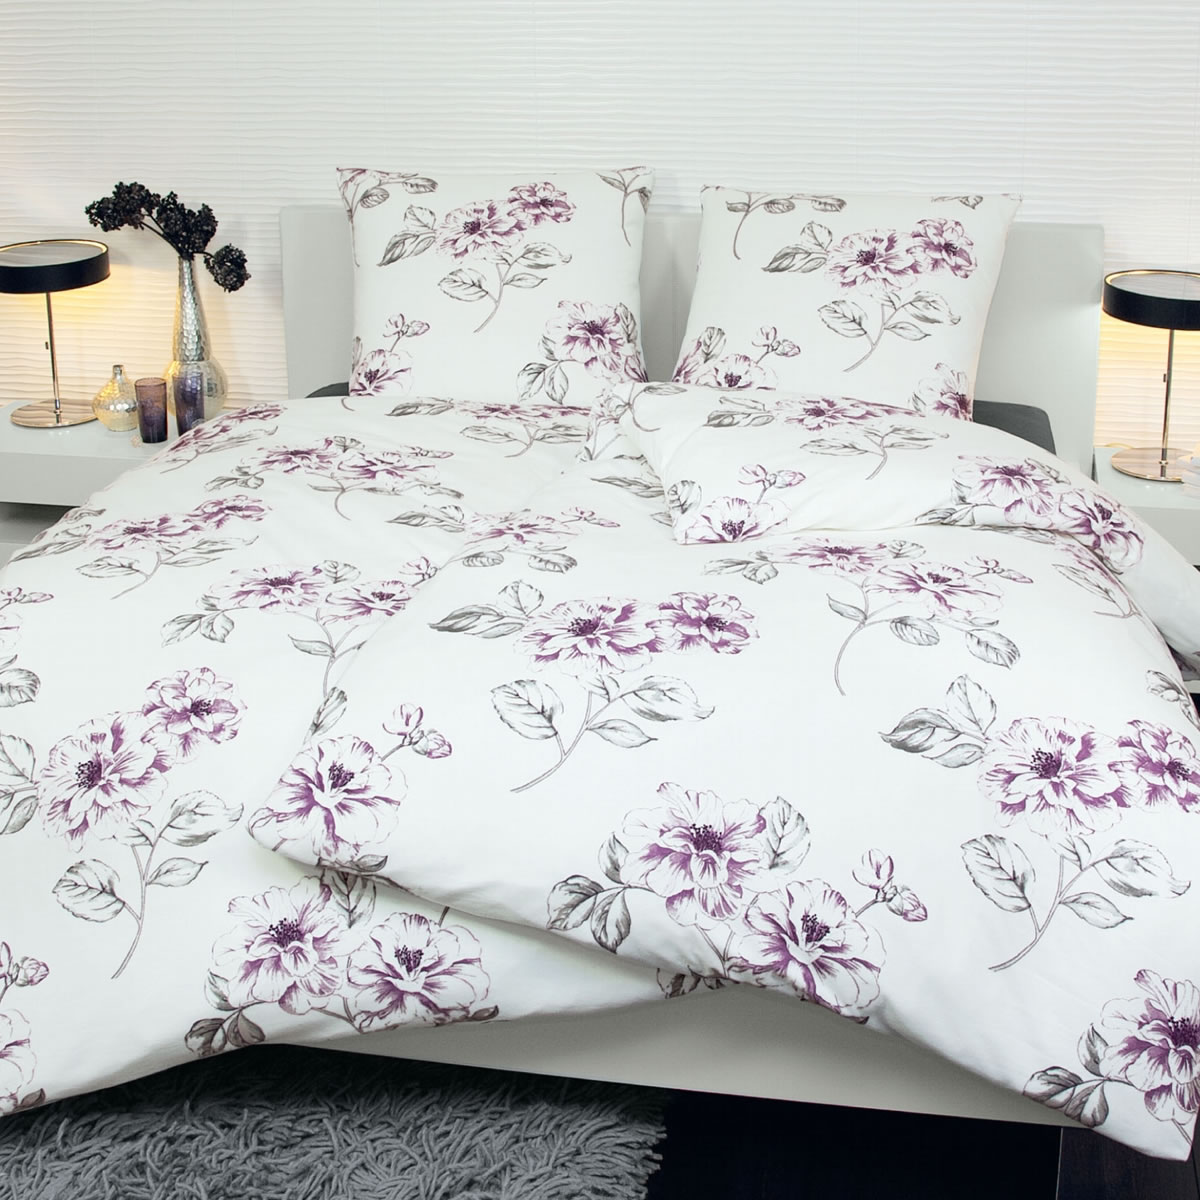 janine edel flanell bettw sche chinchilla 155x220 cm 7559 05 blumen. Black Bedroom Furniture Sets. Home Design Ideas